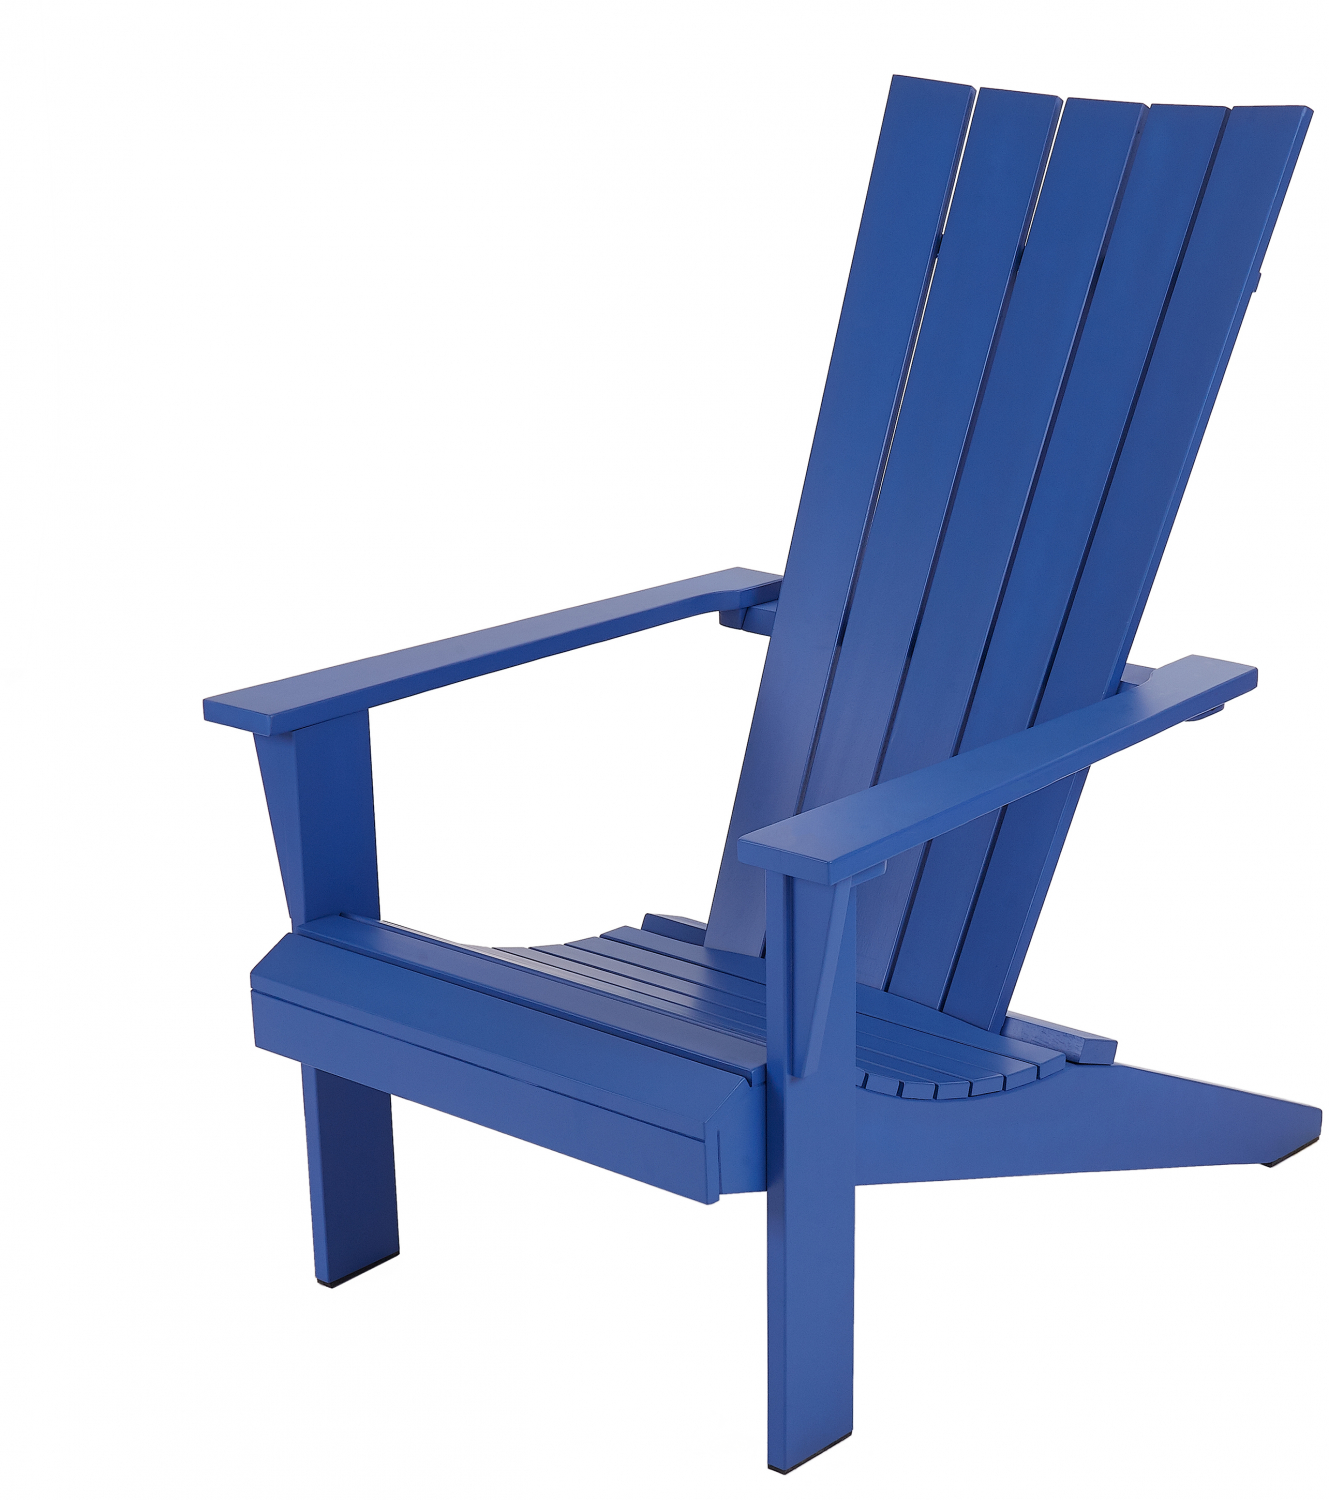 Details About Outdoor Patio Wooden Adirondack Chair Lounge Deck Porch Blue Red White Gray New